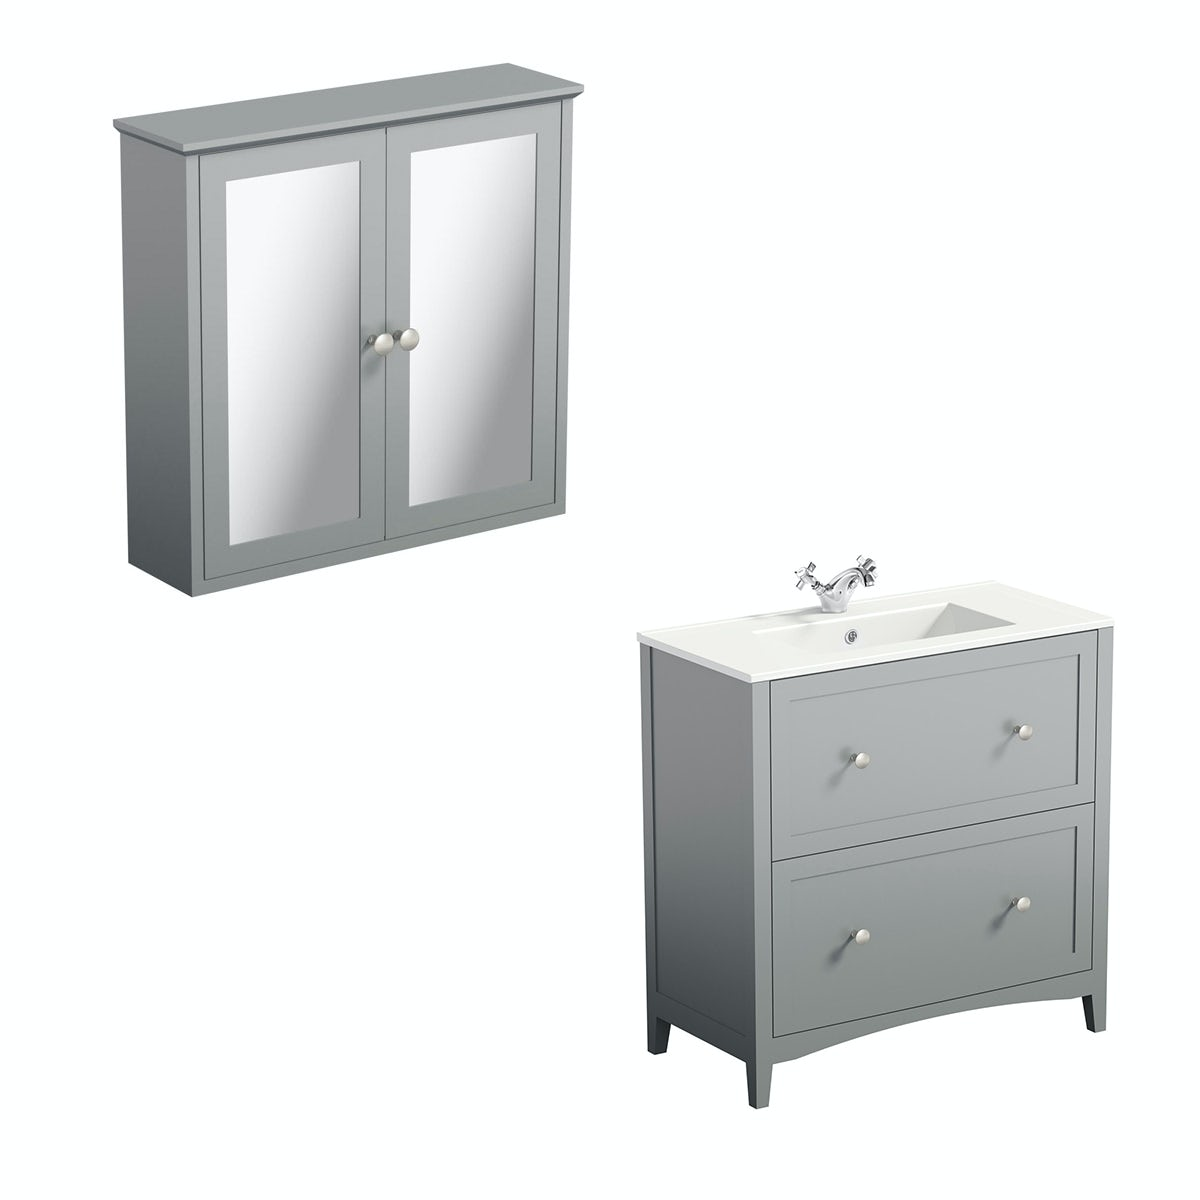 The Bath Co. Camberley satin grey vanity unit 800mm and mirror cabinet offer